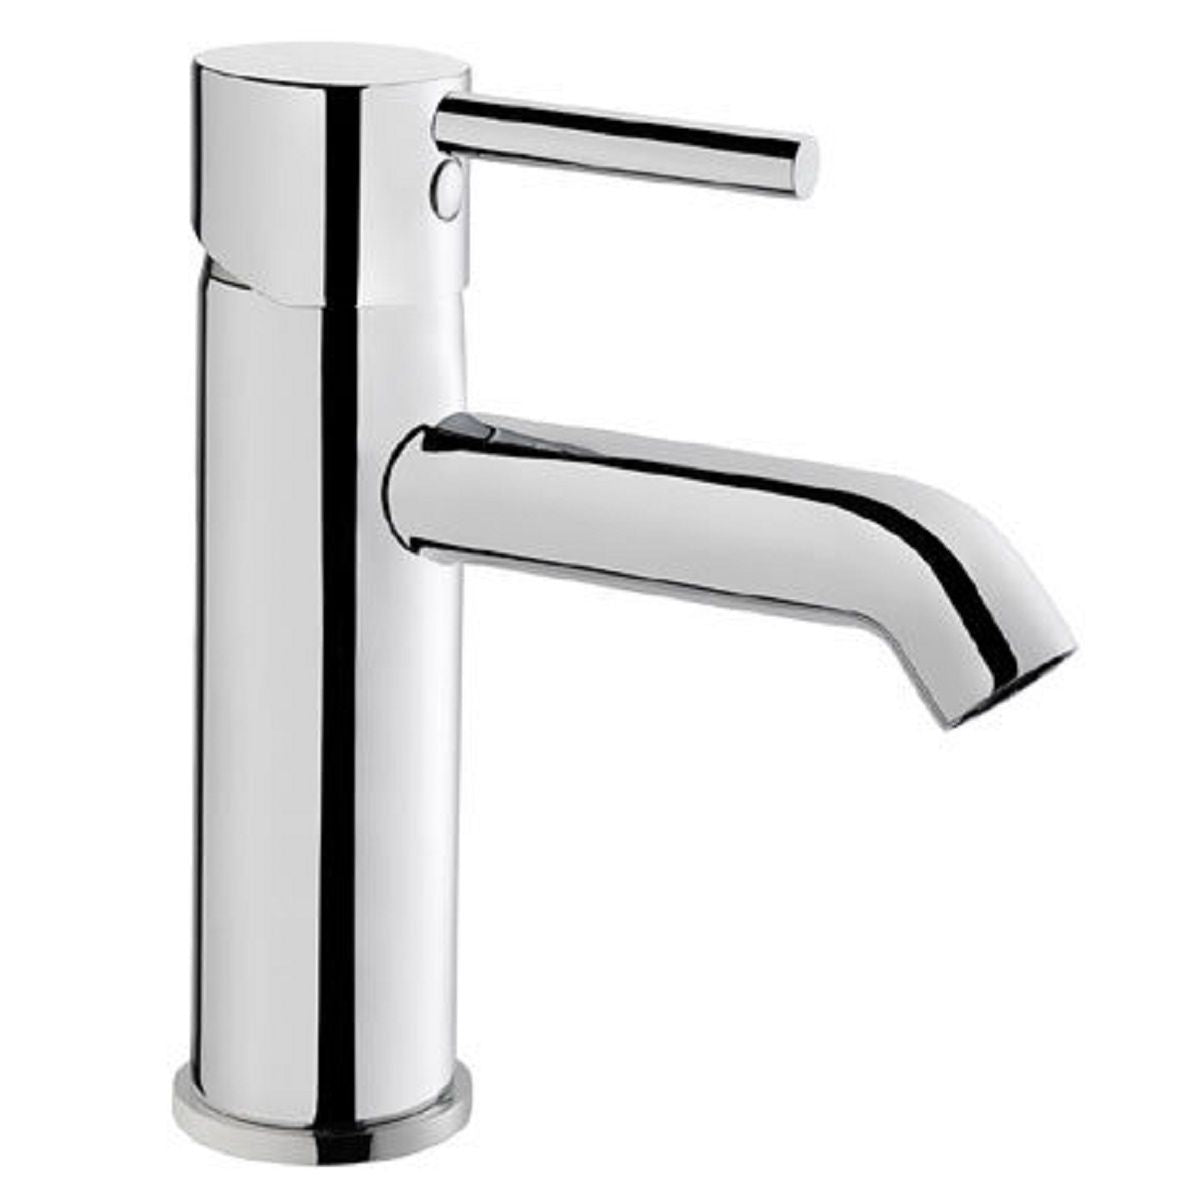 Minimax S Basin Mixer - blueskybathrooms